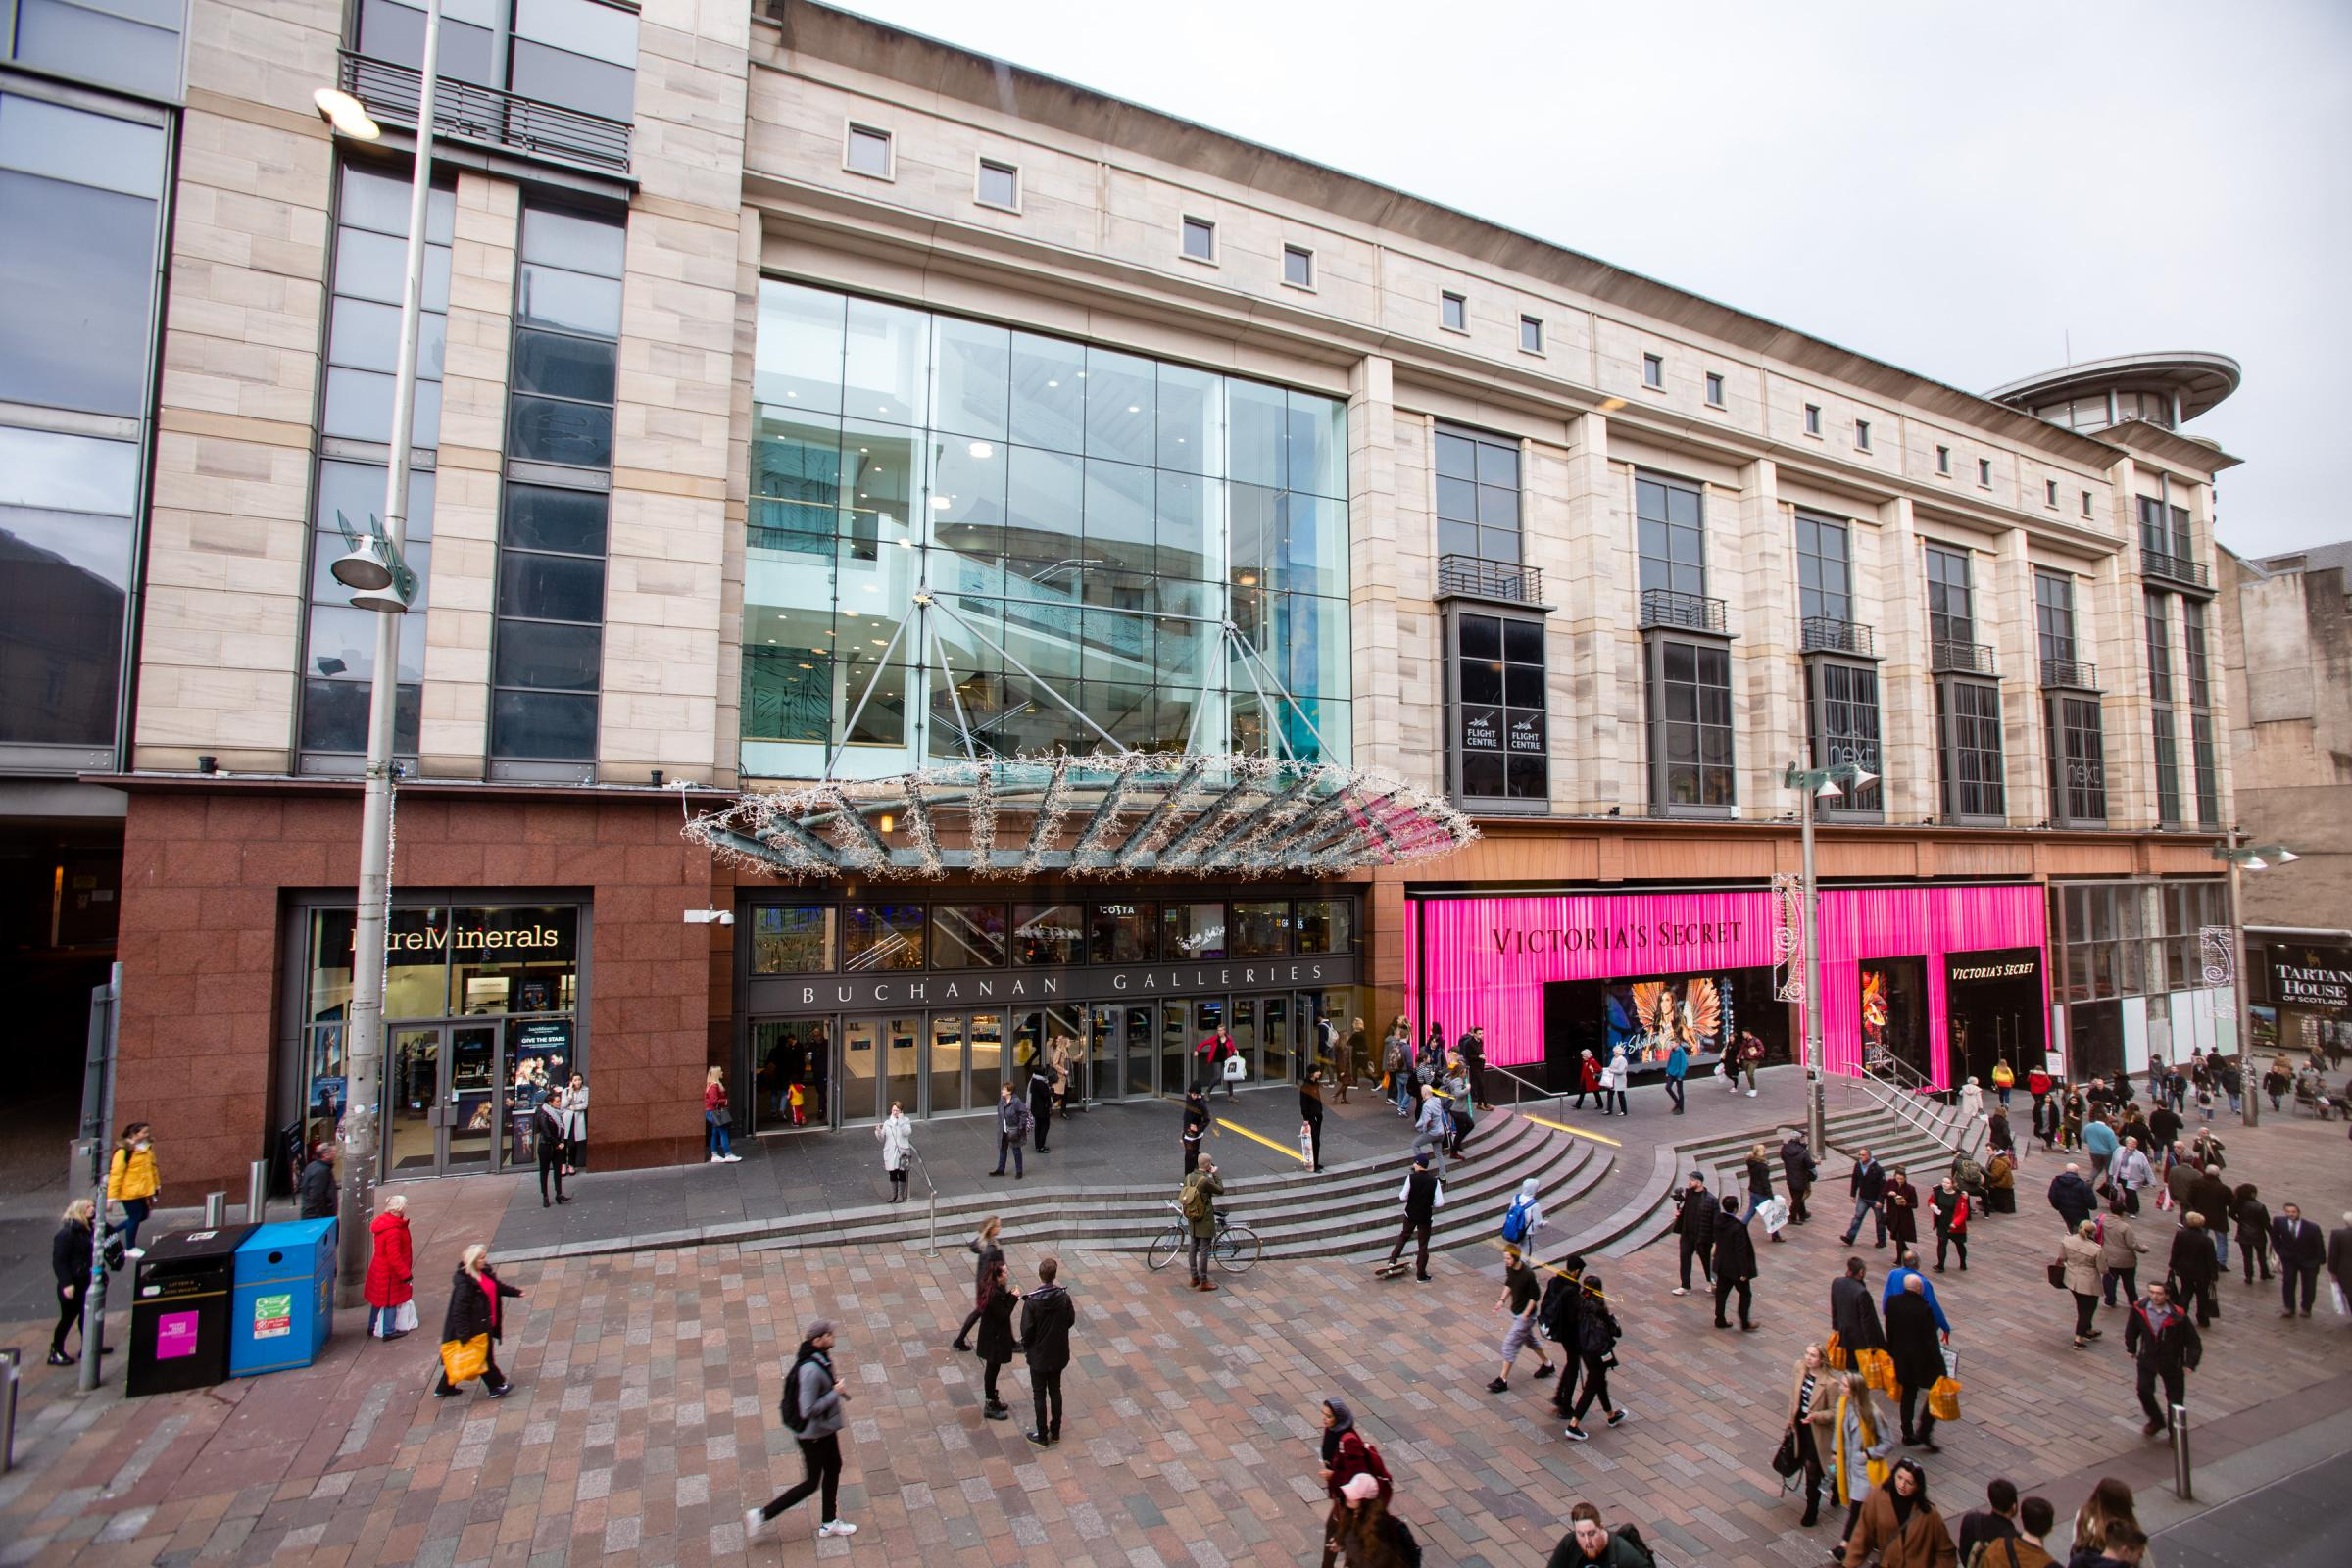 Buchanan Galleries to offer free sanitary products in fight against period poverty